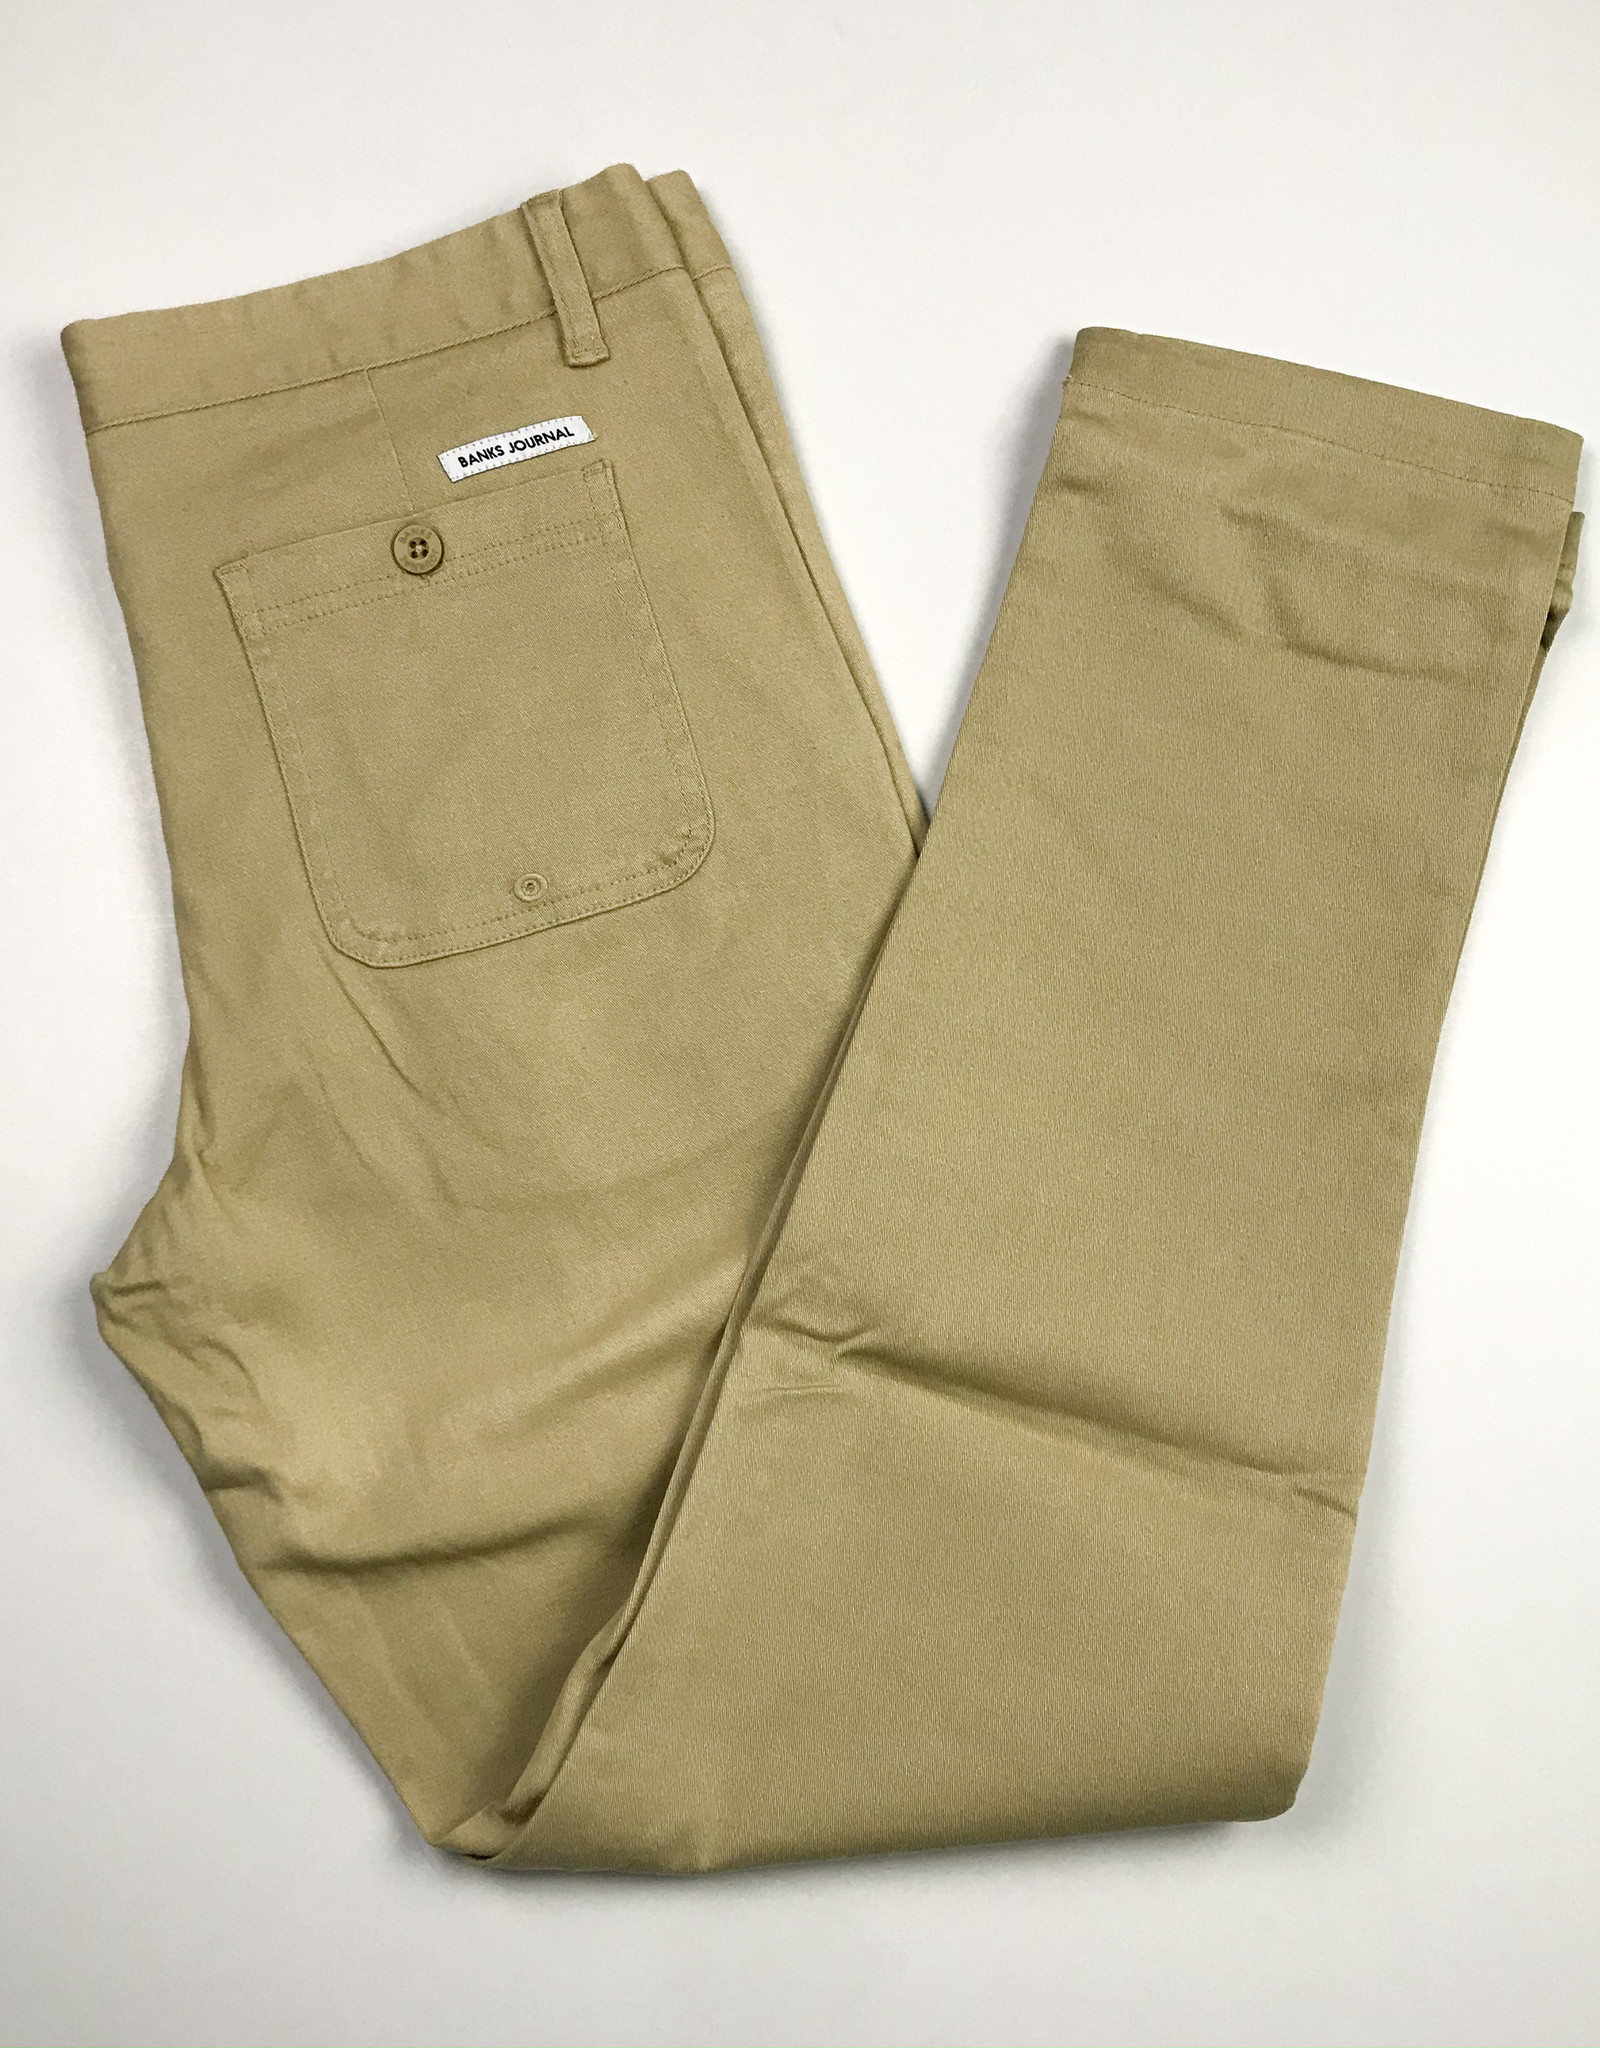 BANKS JOURNAL BANKS PRIMARY PANT - (ALL COLORS)